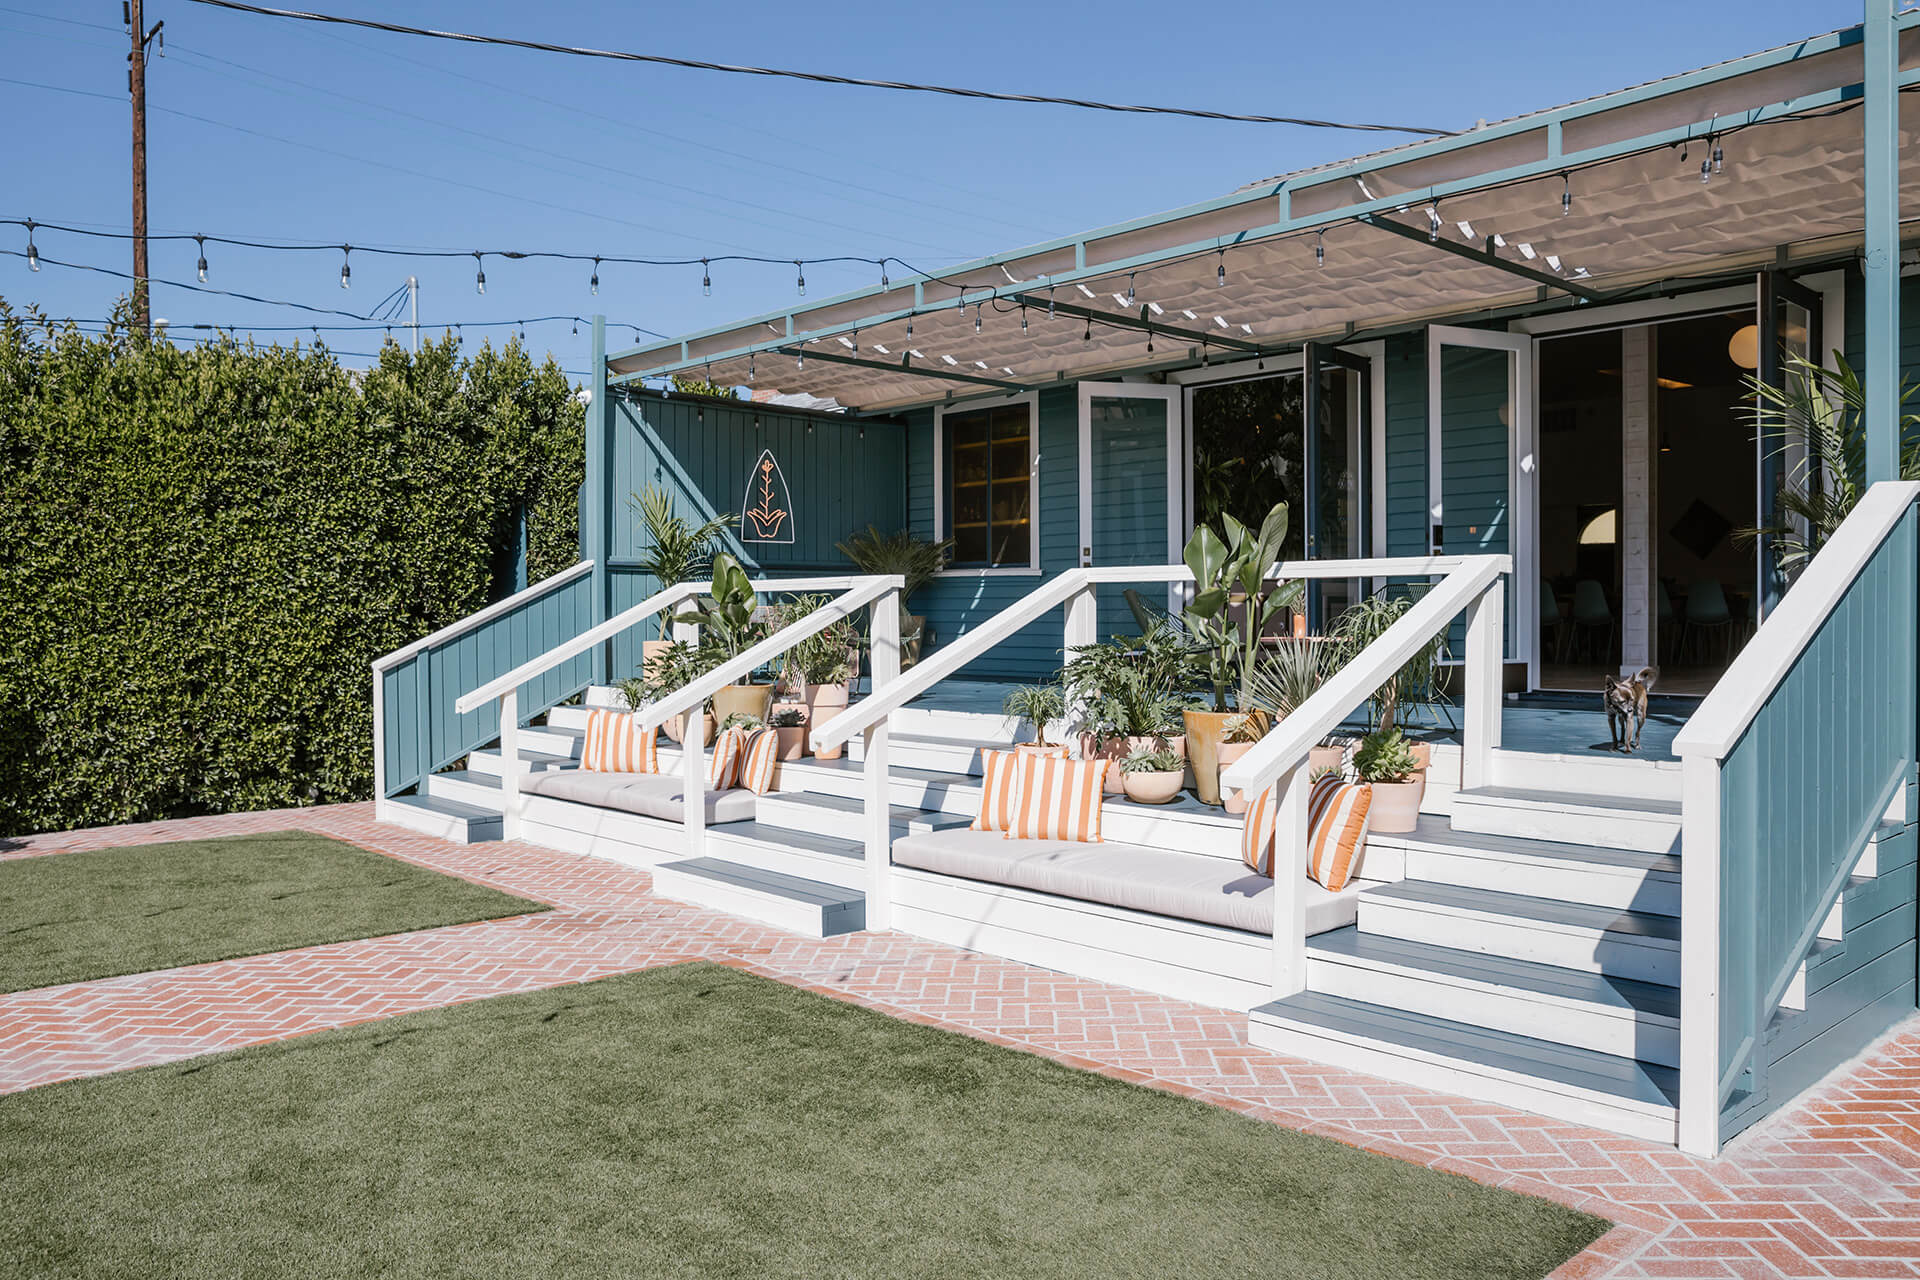 Accessed by wide steps, the large backyard will host film screenings, dinners and other communal events | The Ruby Street in LA is a coworking space by Working Holiday Studio and Francesca De La Fuente | STIRworld